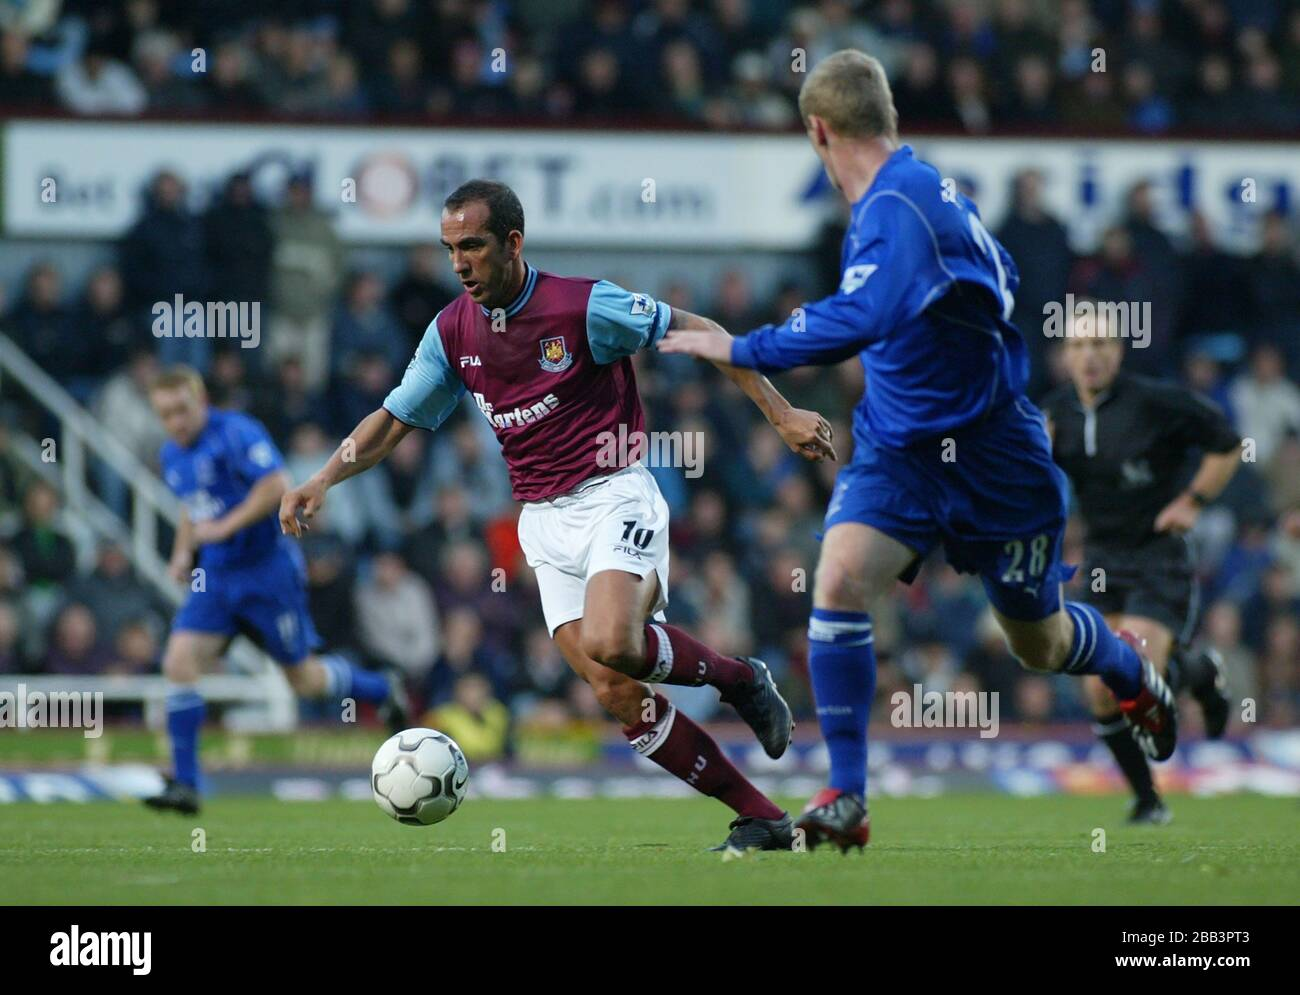 LONDON, United Kingdom, OCTOBER 27 Paolo Di Canio of West Ham United in  action during Barclaycard Premiership between West Ham United and Everton  at Stock Photo - Alamy